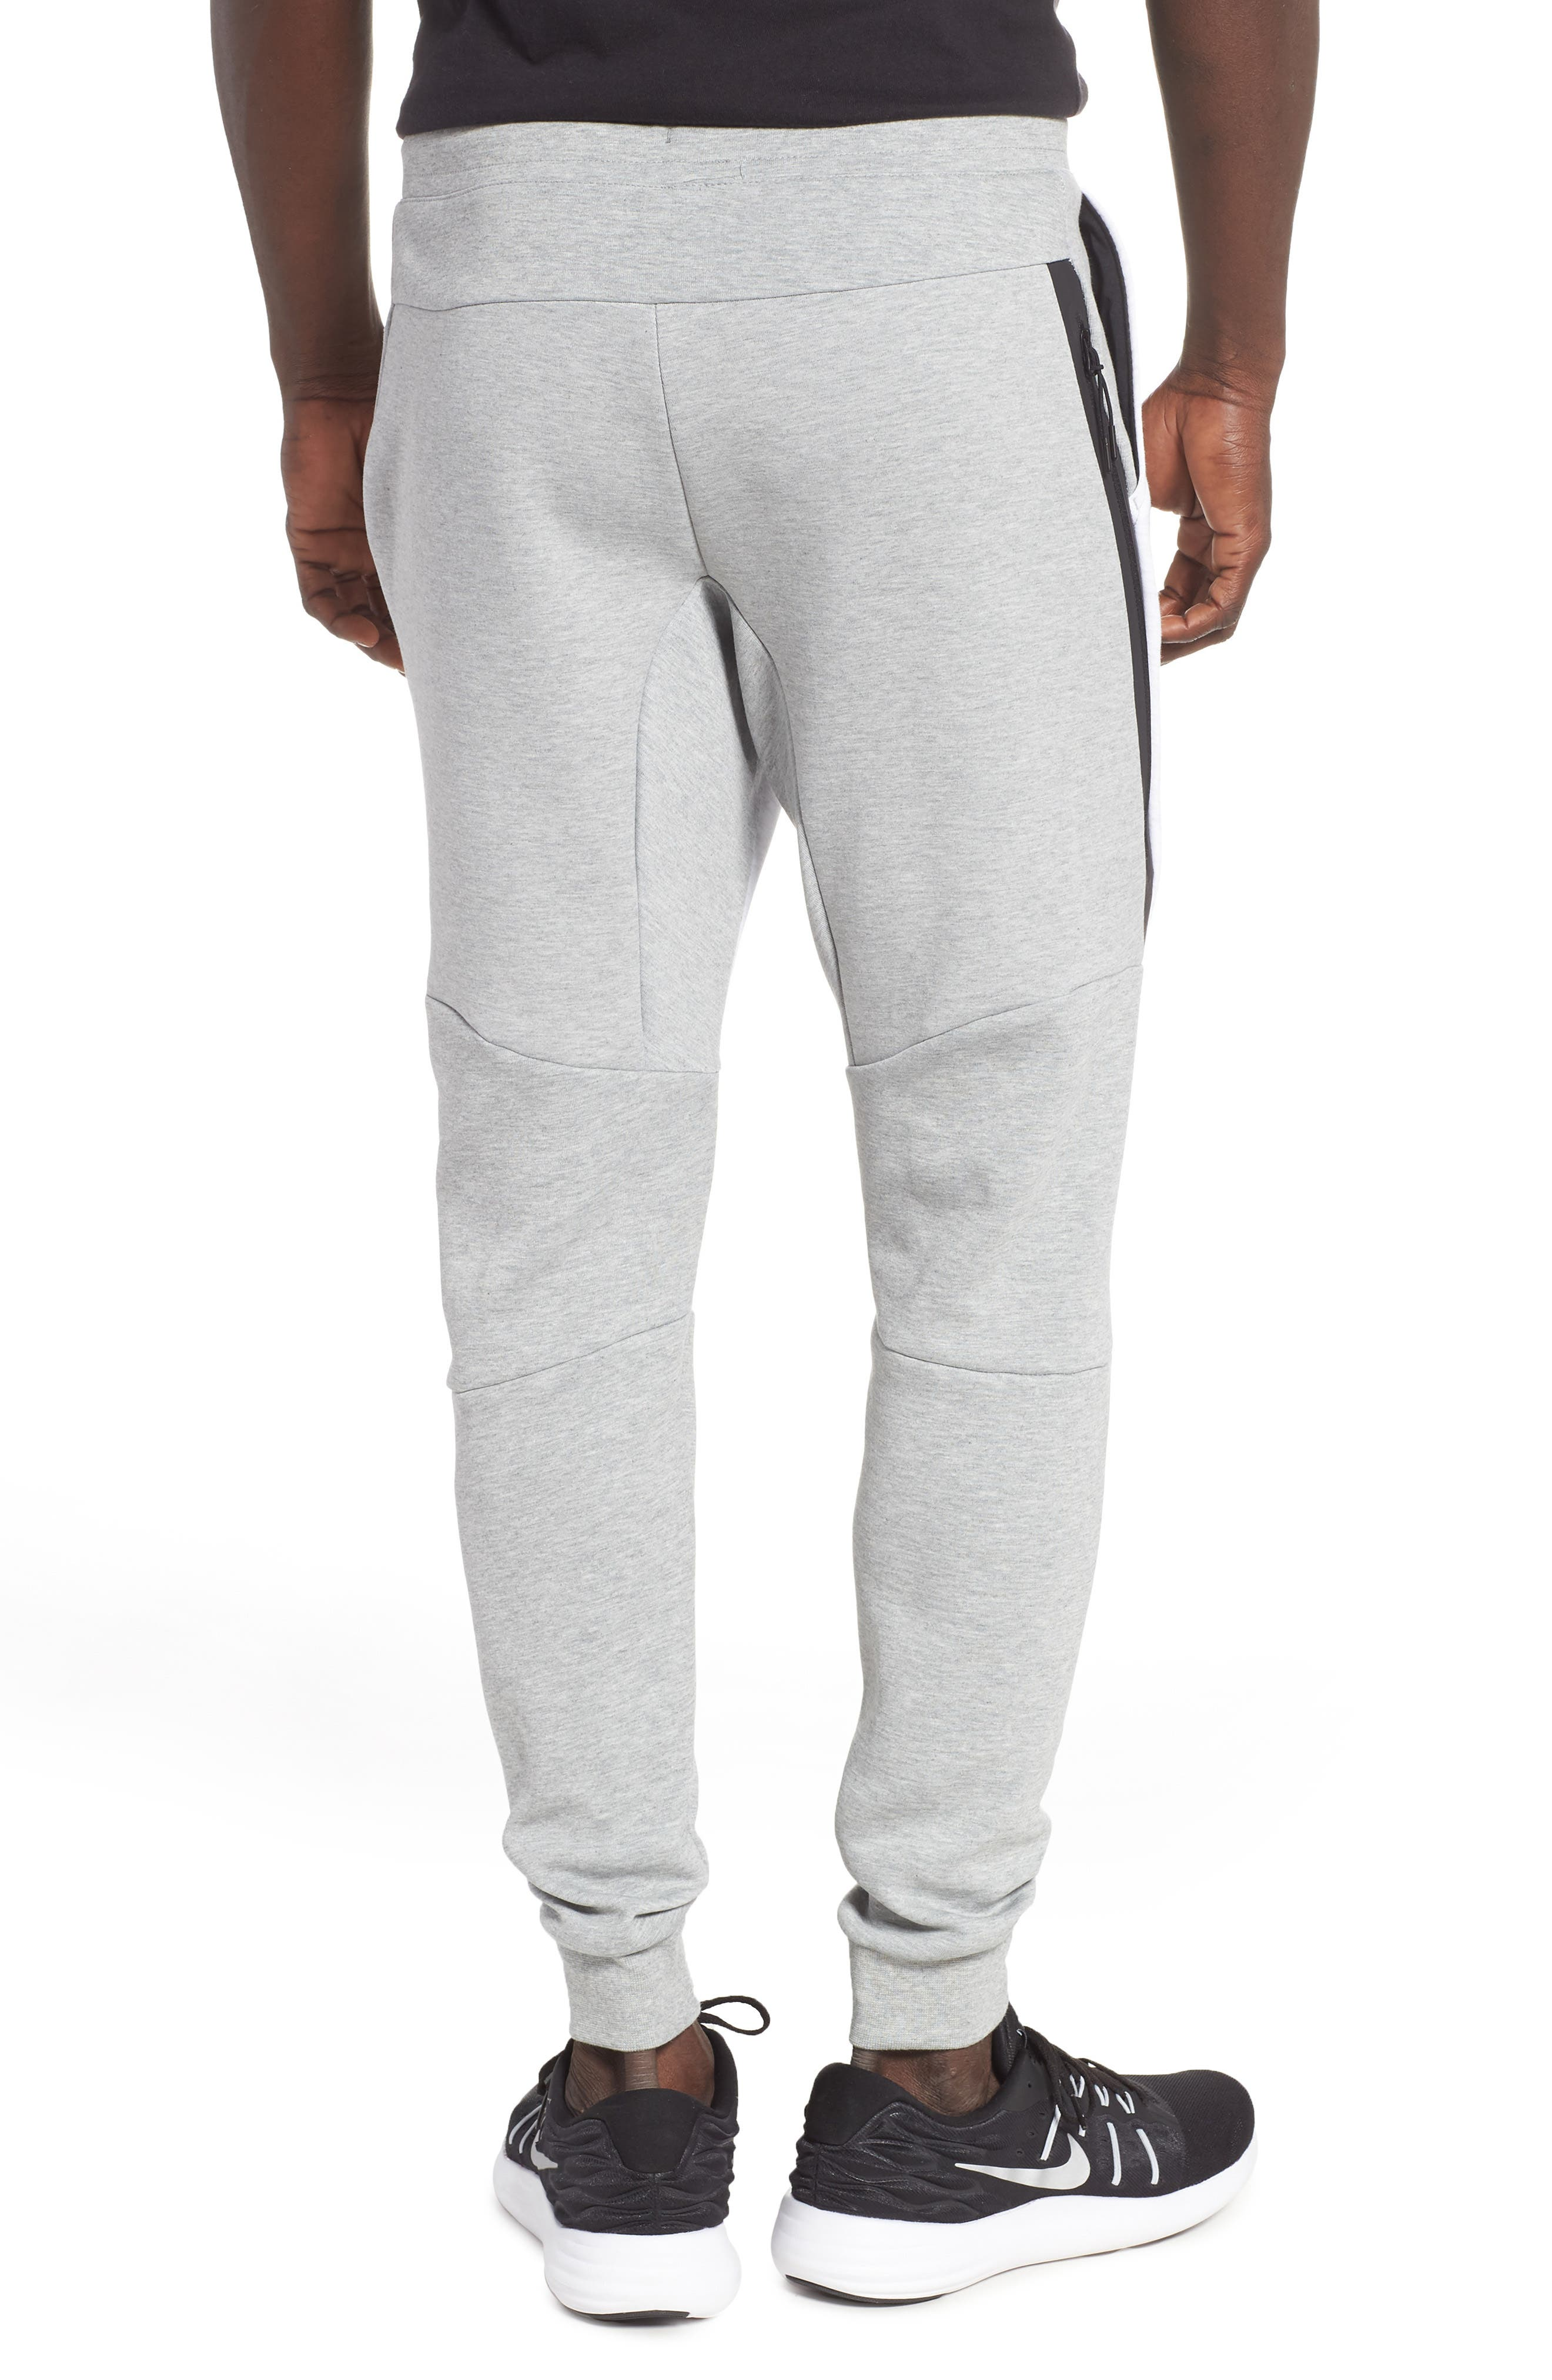 Tech Fleece Jogger Pants,                             Alternate thumbnail 2, color,                             HEATHER/ BIRCH HEATHER/ BLACK